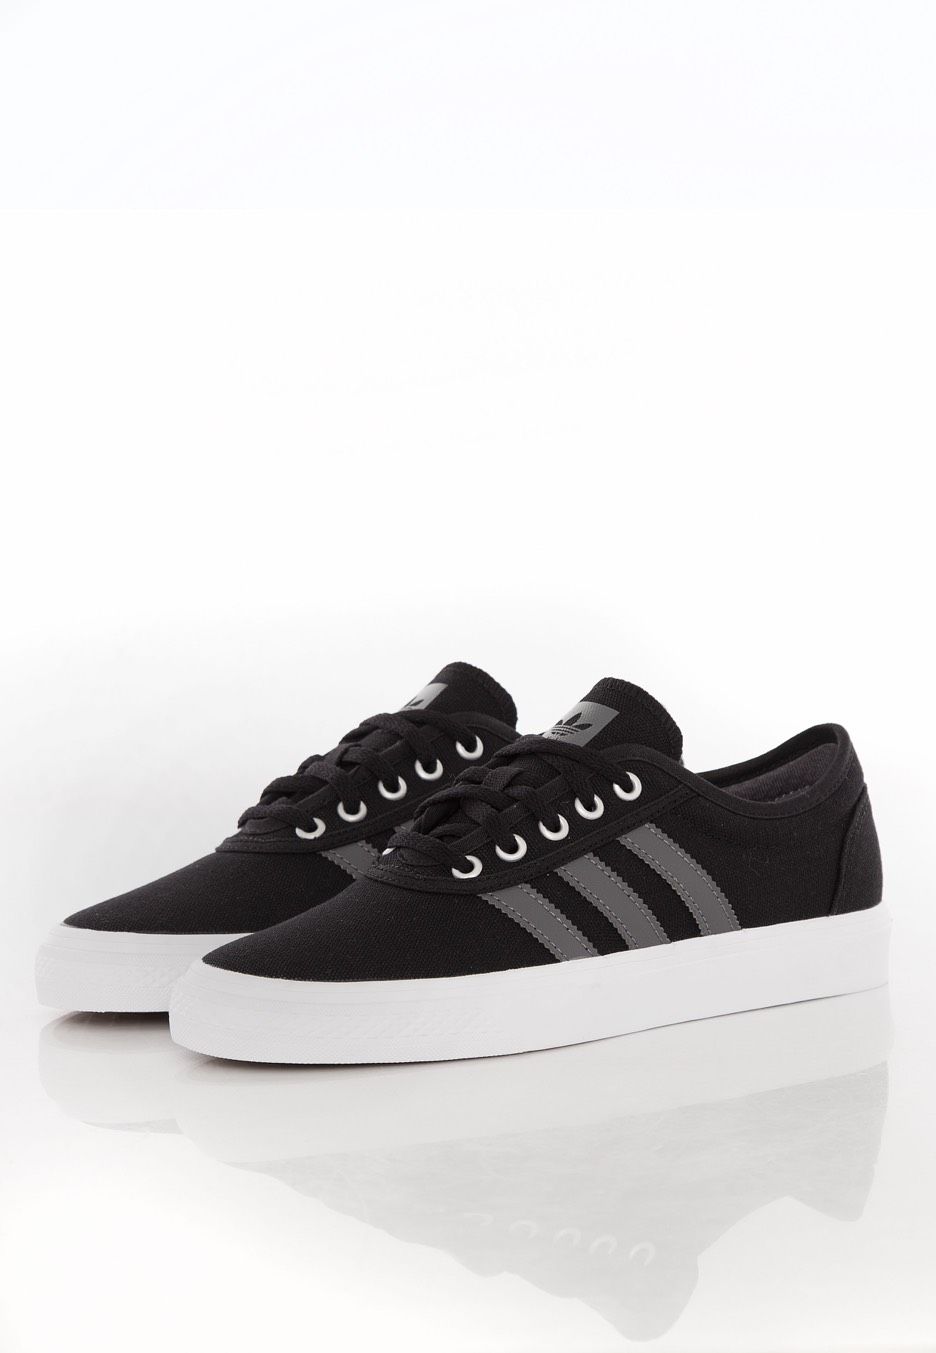 the latest 9ae63 42d1c ... Adidas - Adi-Ease Core BlackGrey FourFtwr White - Shoes ...